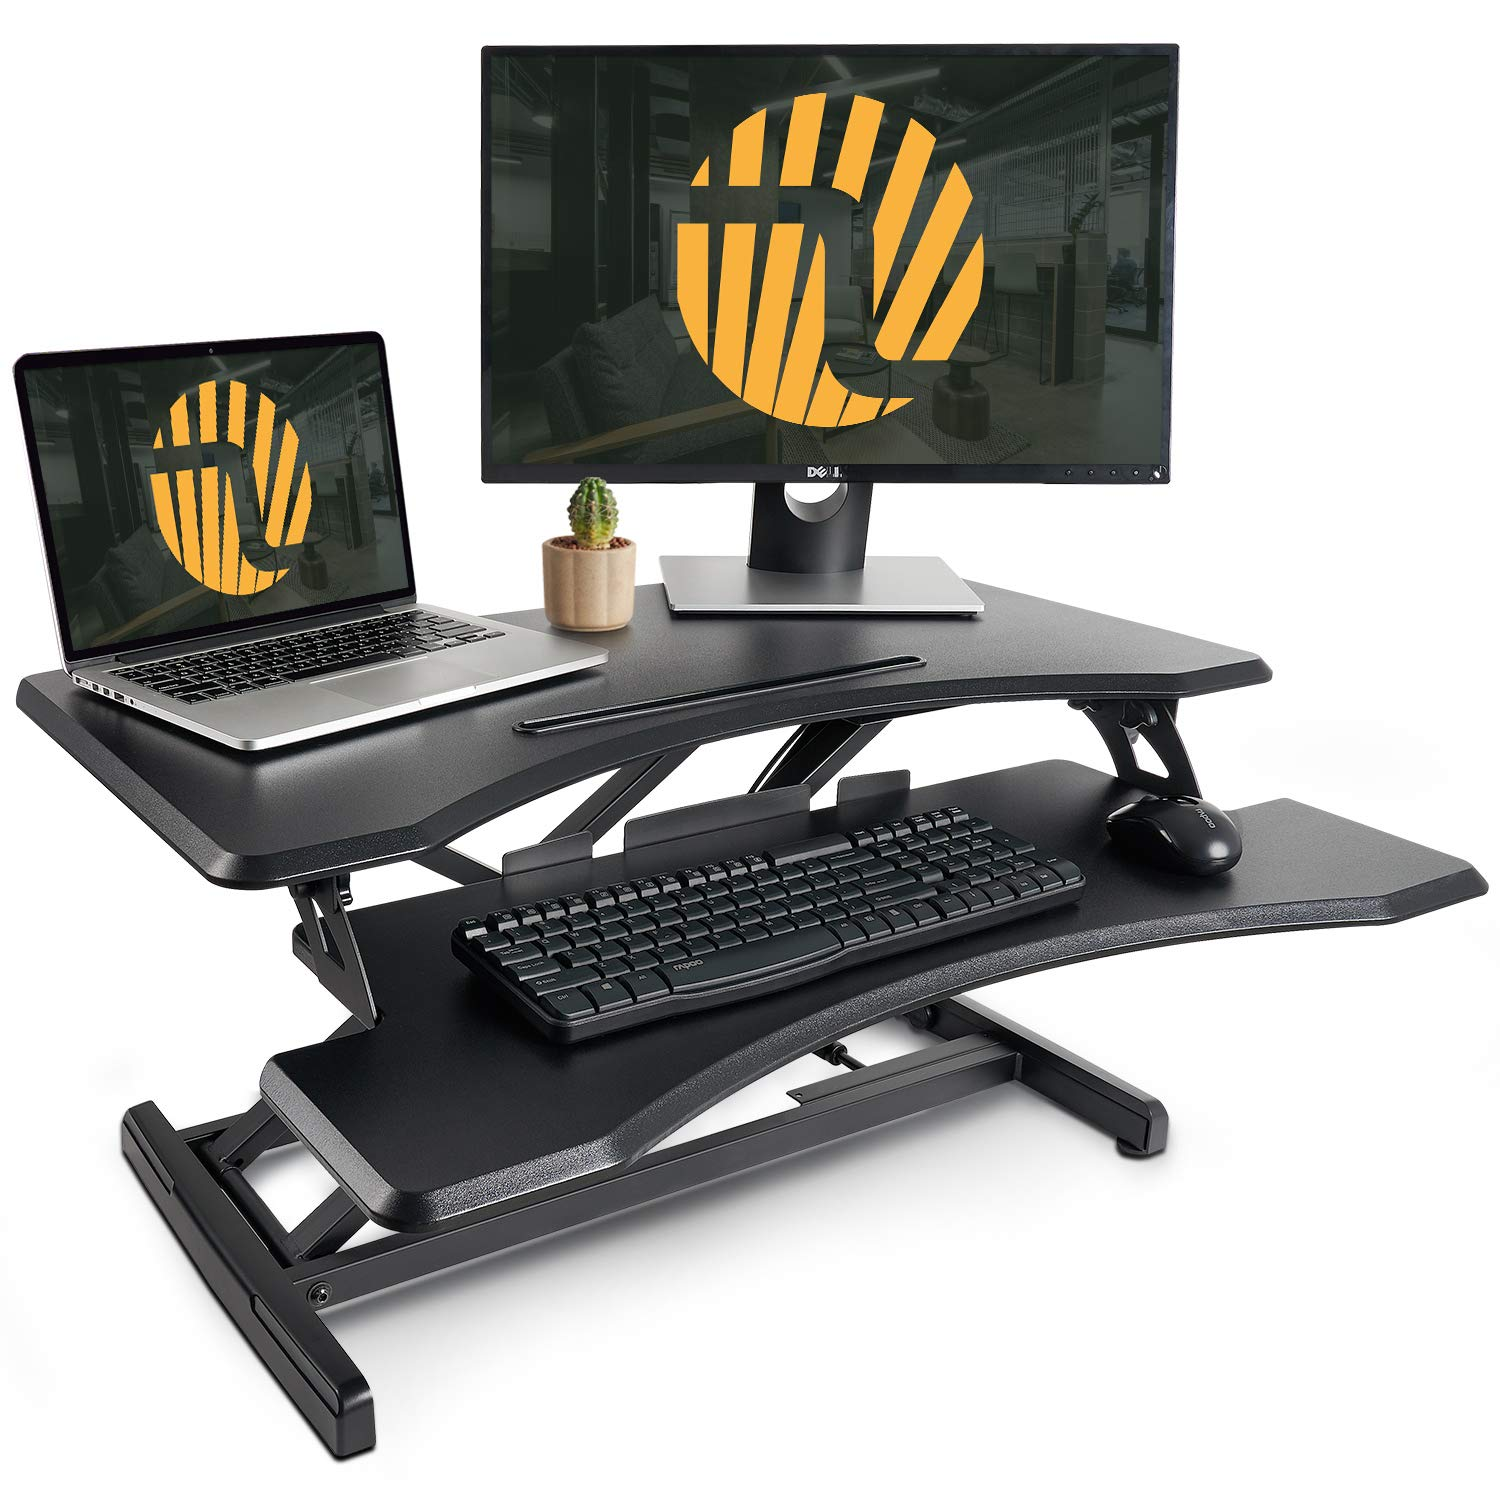 Standing Desk with Height Adjustable - FEZIBO Stand Up Desk Converter, 33 inches Black Ergonomic Tabletop Workstation Riser Fits Dual Monitors